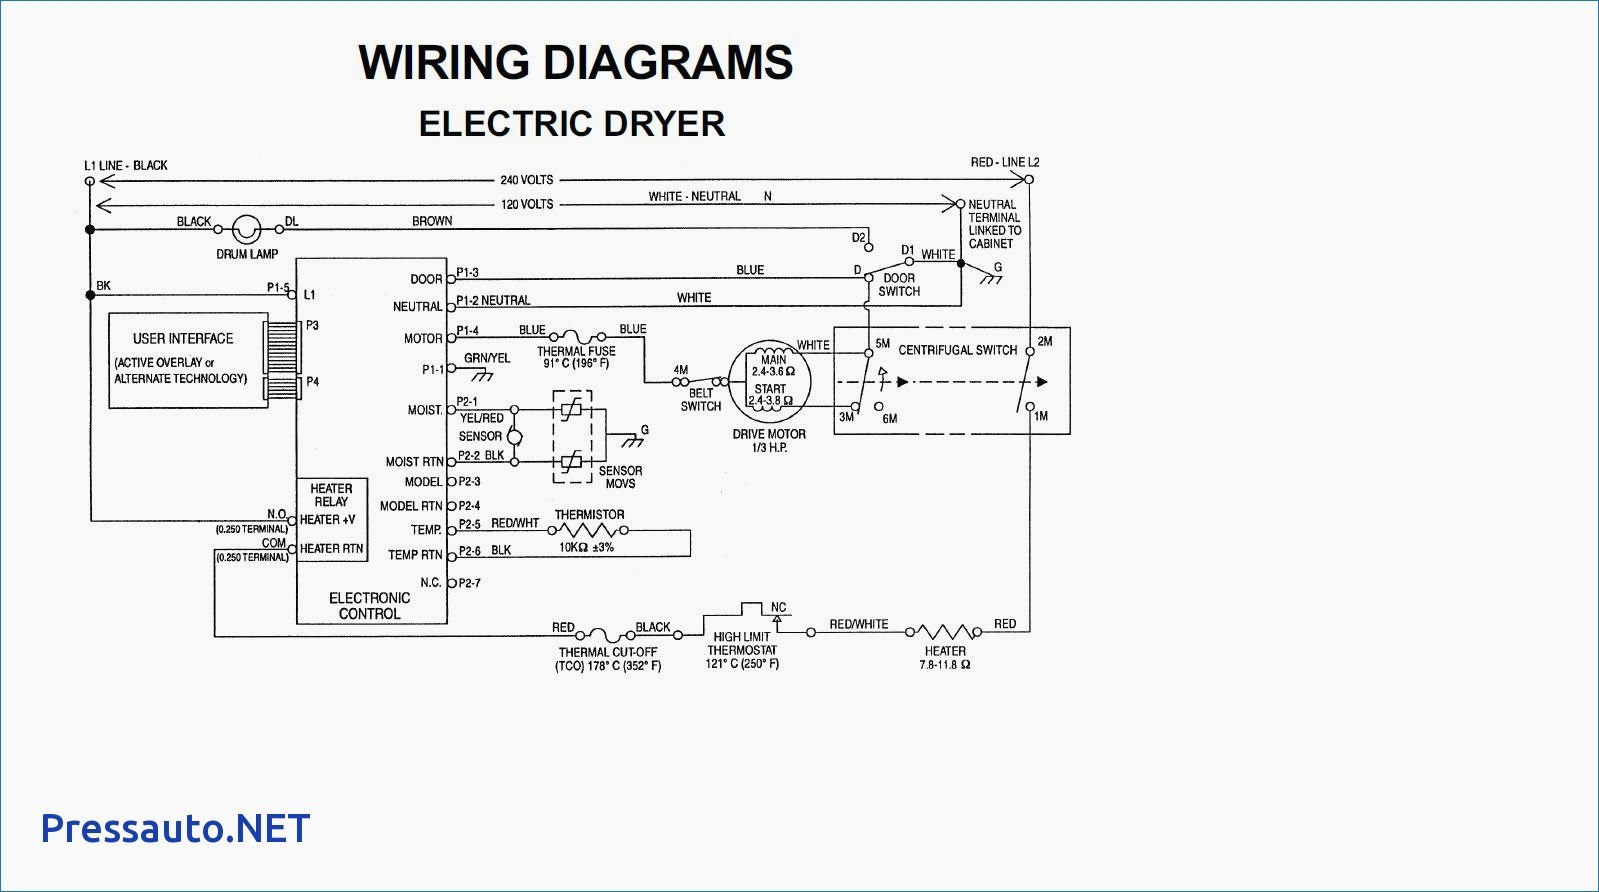 kenmore dryer wiring diagram Collection-Electrical Circuit Diagram Wonderful Kenmore Dryer Wiring Diagram Fitfathers Me Que Wire 37 Unique Electrical 4-q